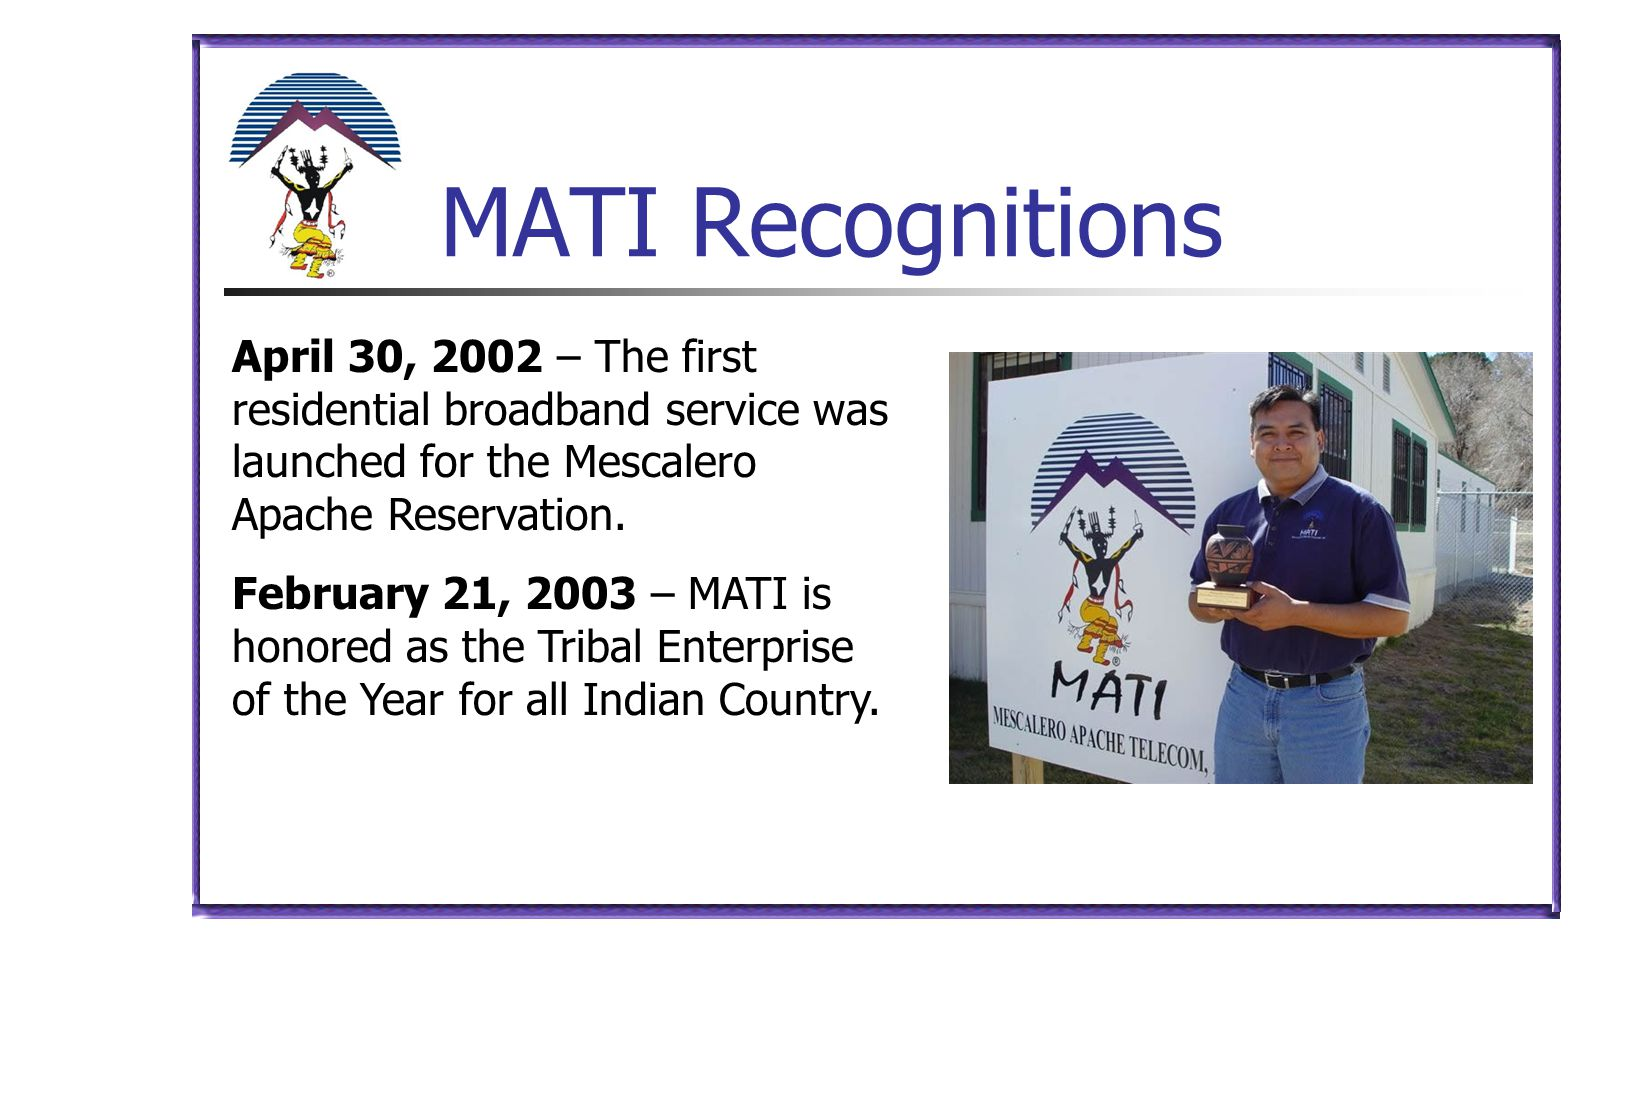 MATI Recognitions April 30, 2002 – The first residential broadband service was launched for the Mescalero Apache Reservation. February 21, 2003 – MATI